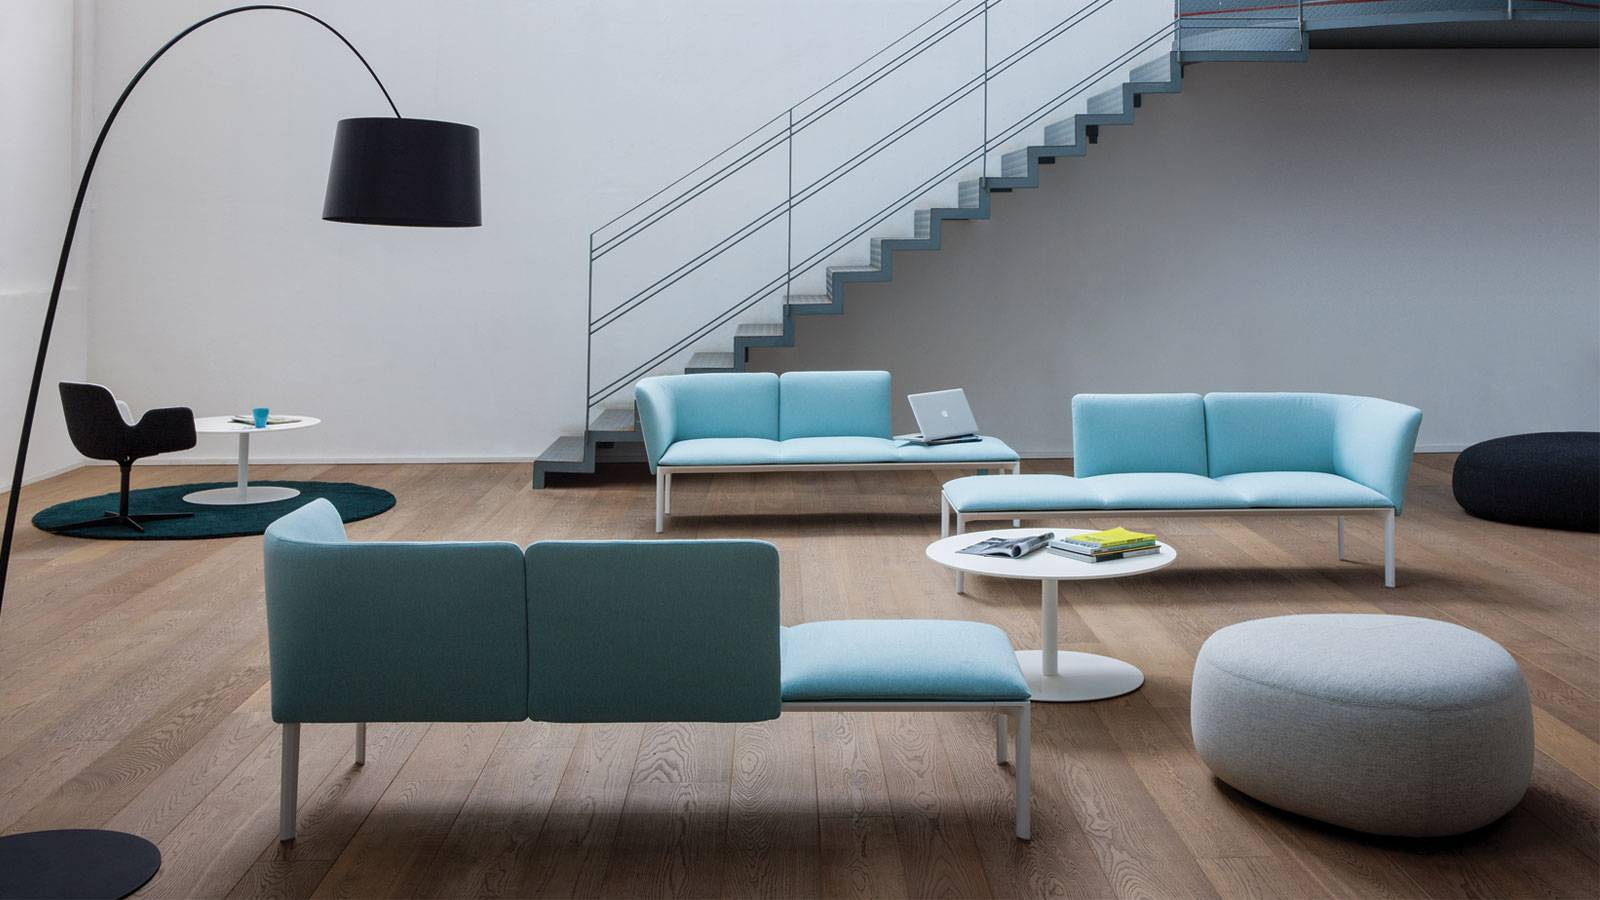 contemporary design seating system by Francesco Rota for LaPalma